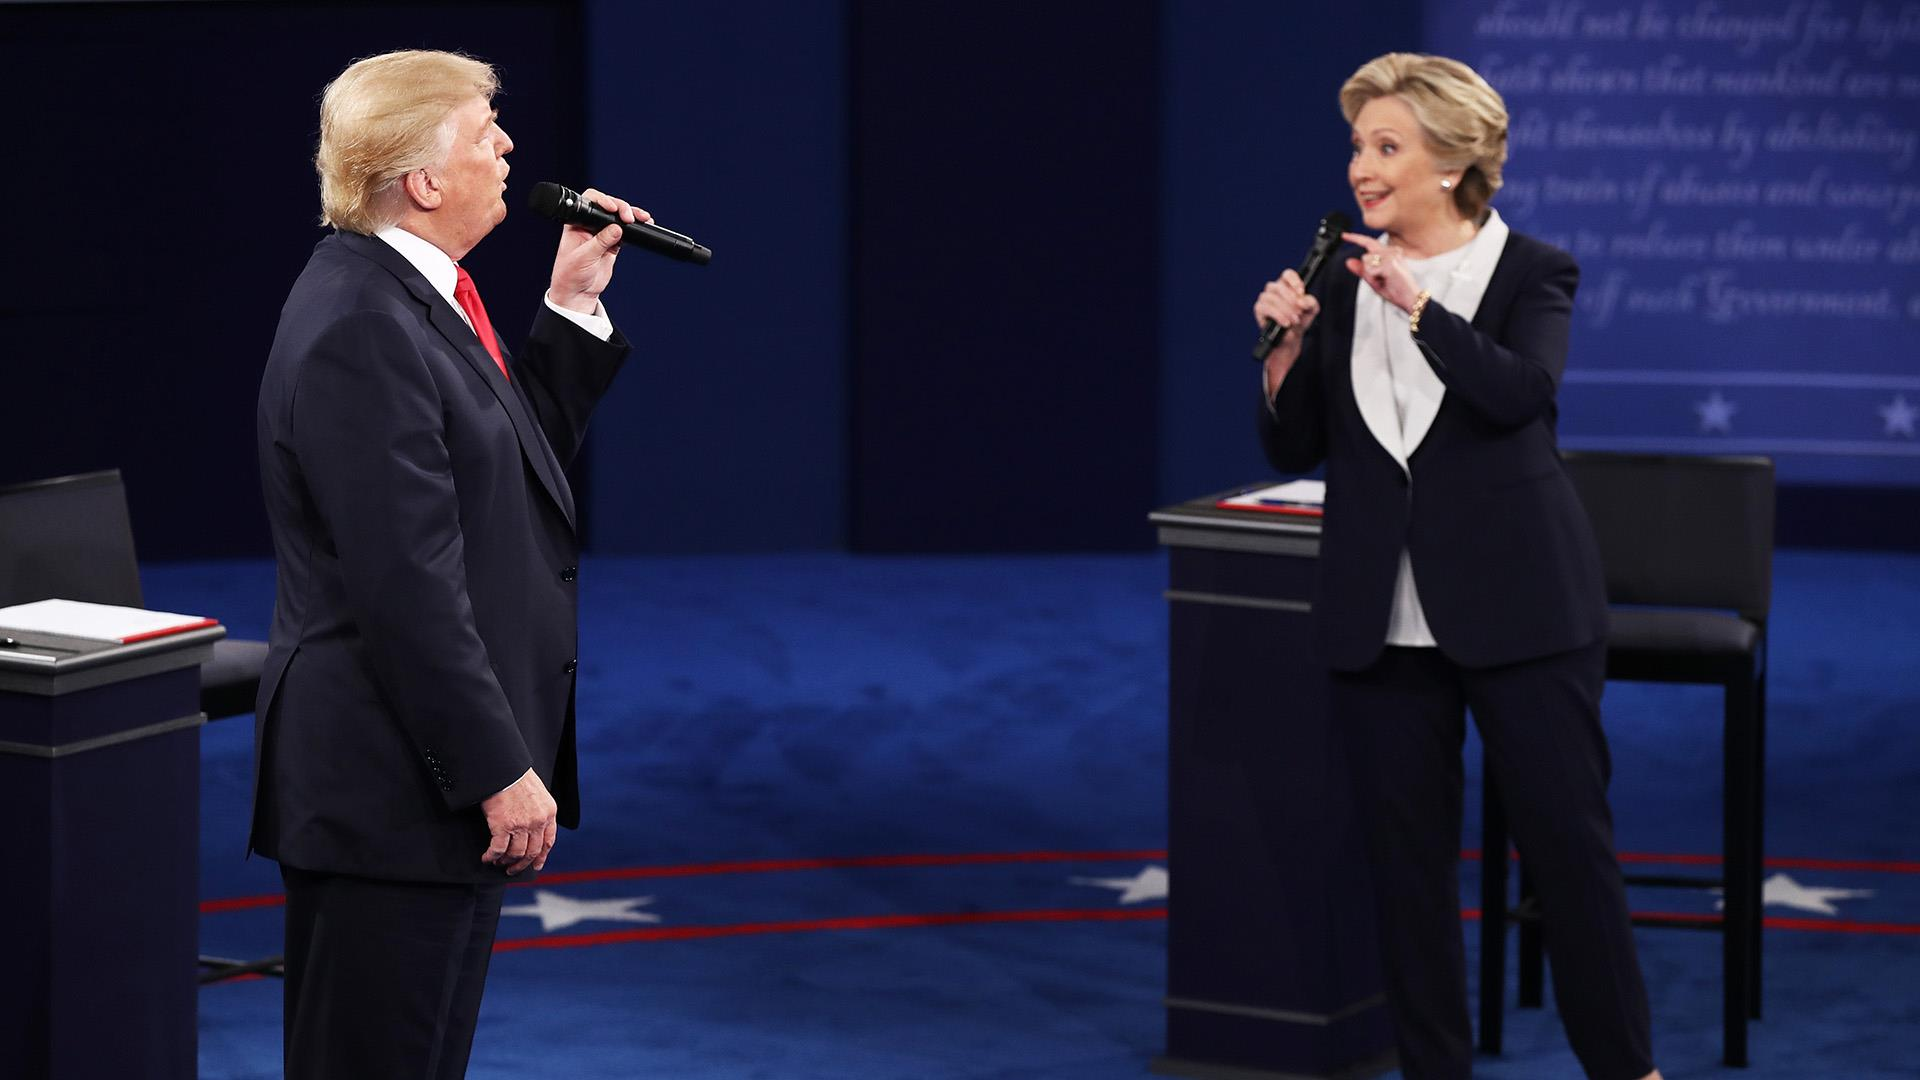 Second presidential debate highlights: Accusations ...